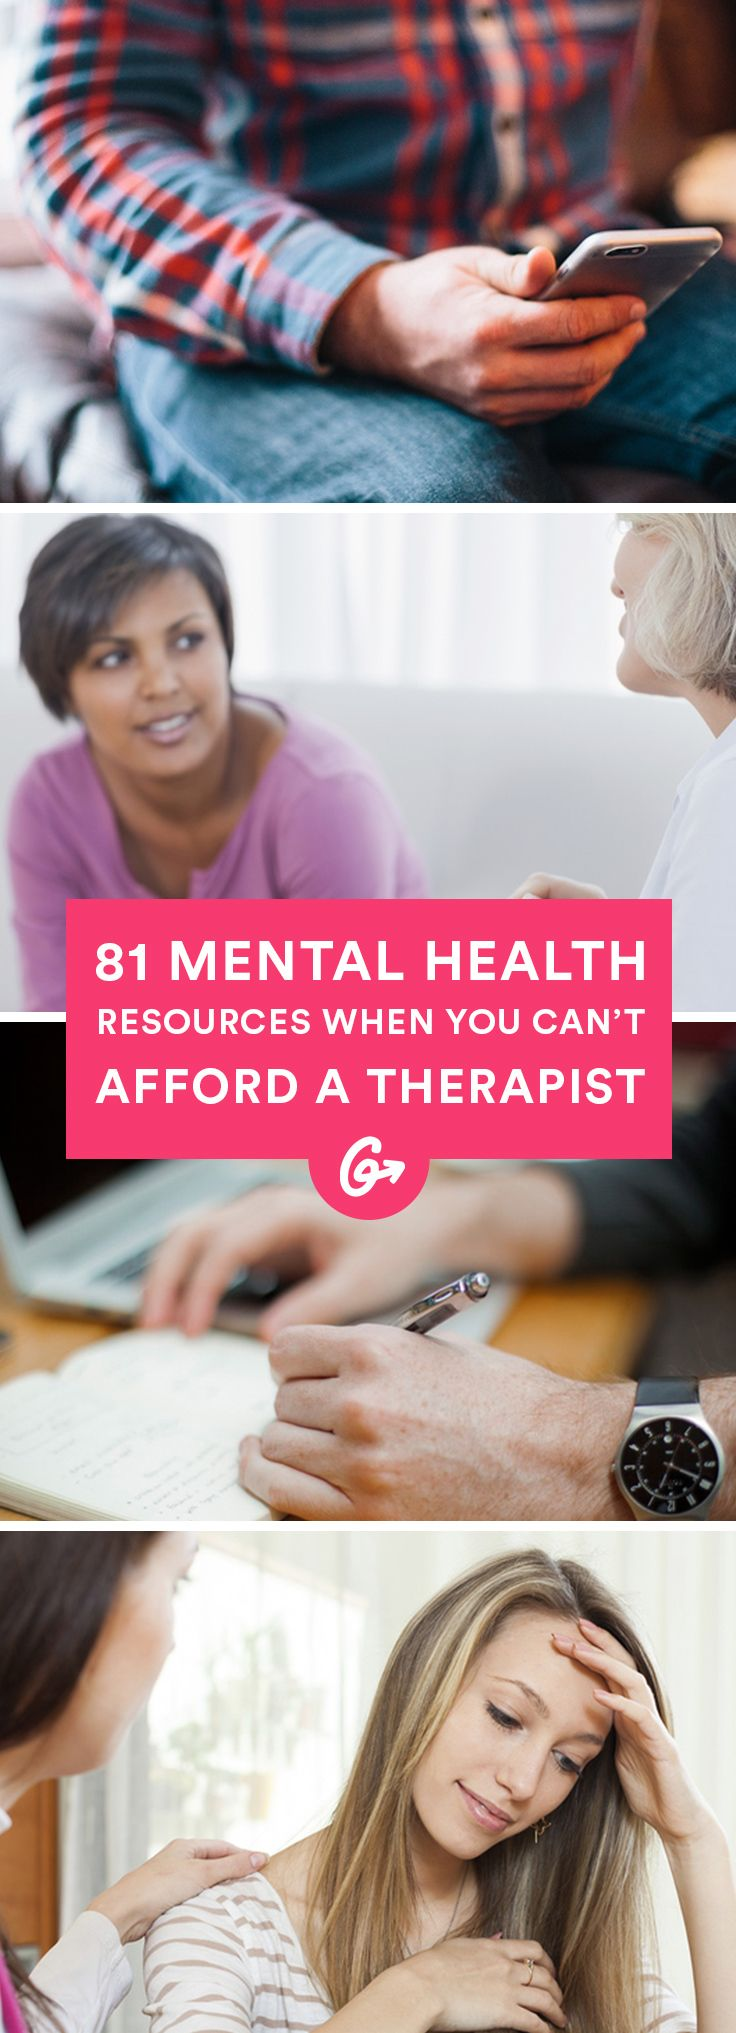 Keep this list of mental health resources handy whenever you need some backup. #mentalhealth #therapy #selfcare http://greatist.com/grow/resources-when-you-can-not-afford-therapy